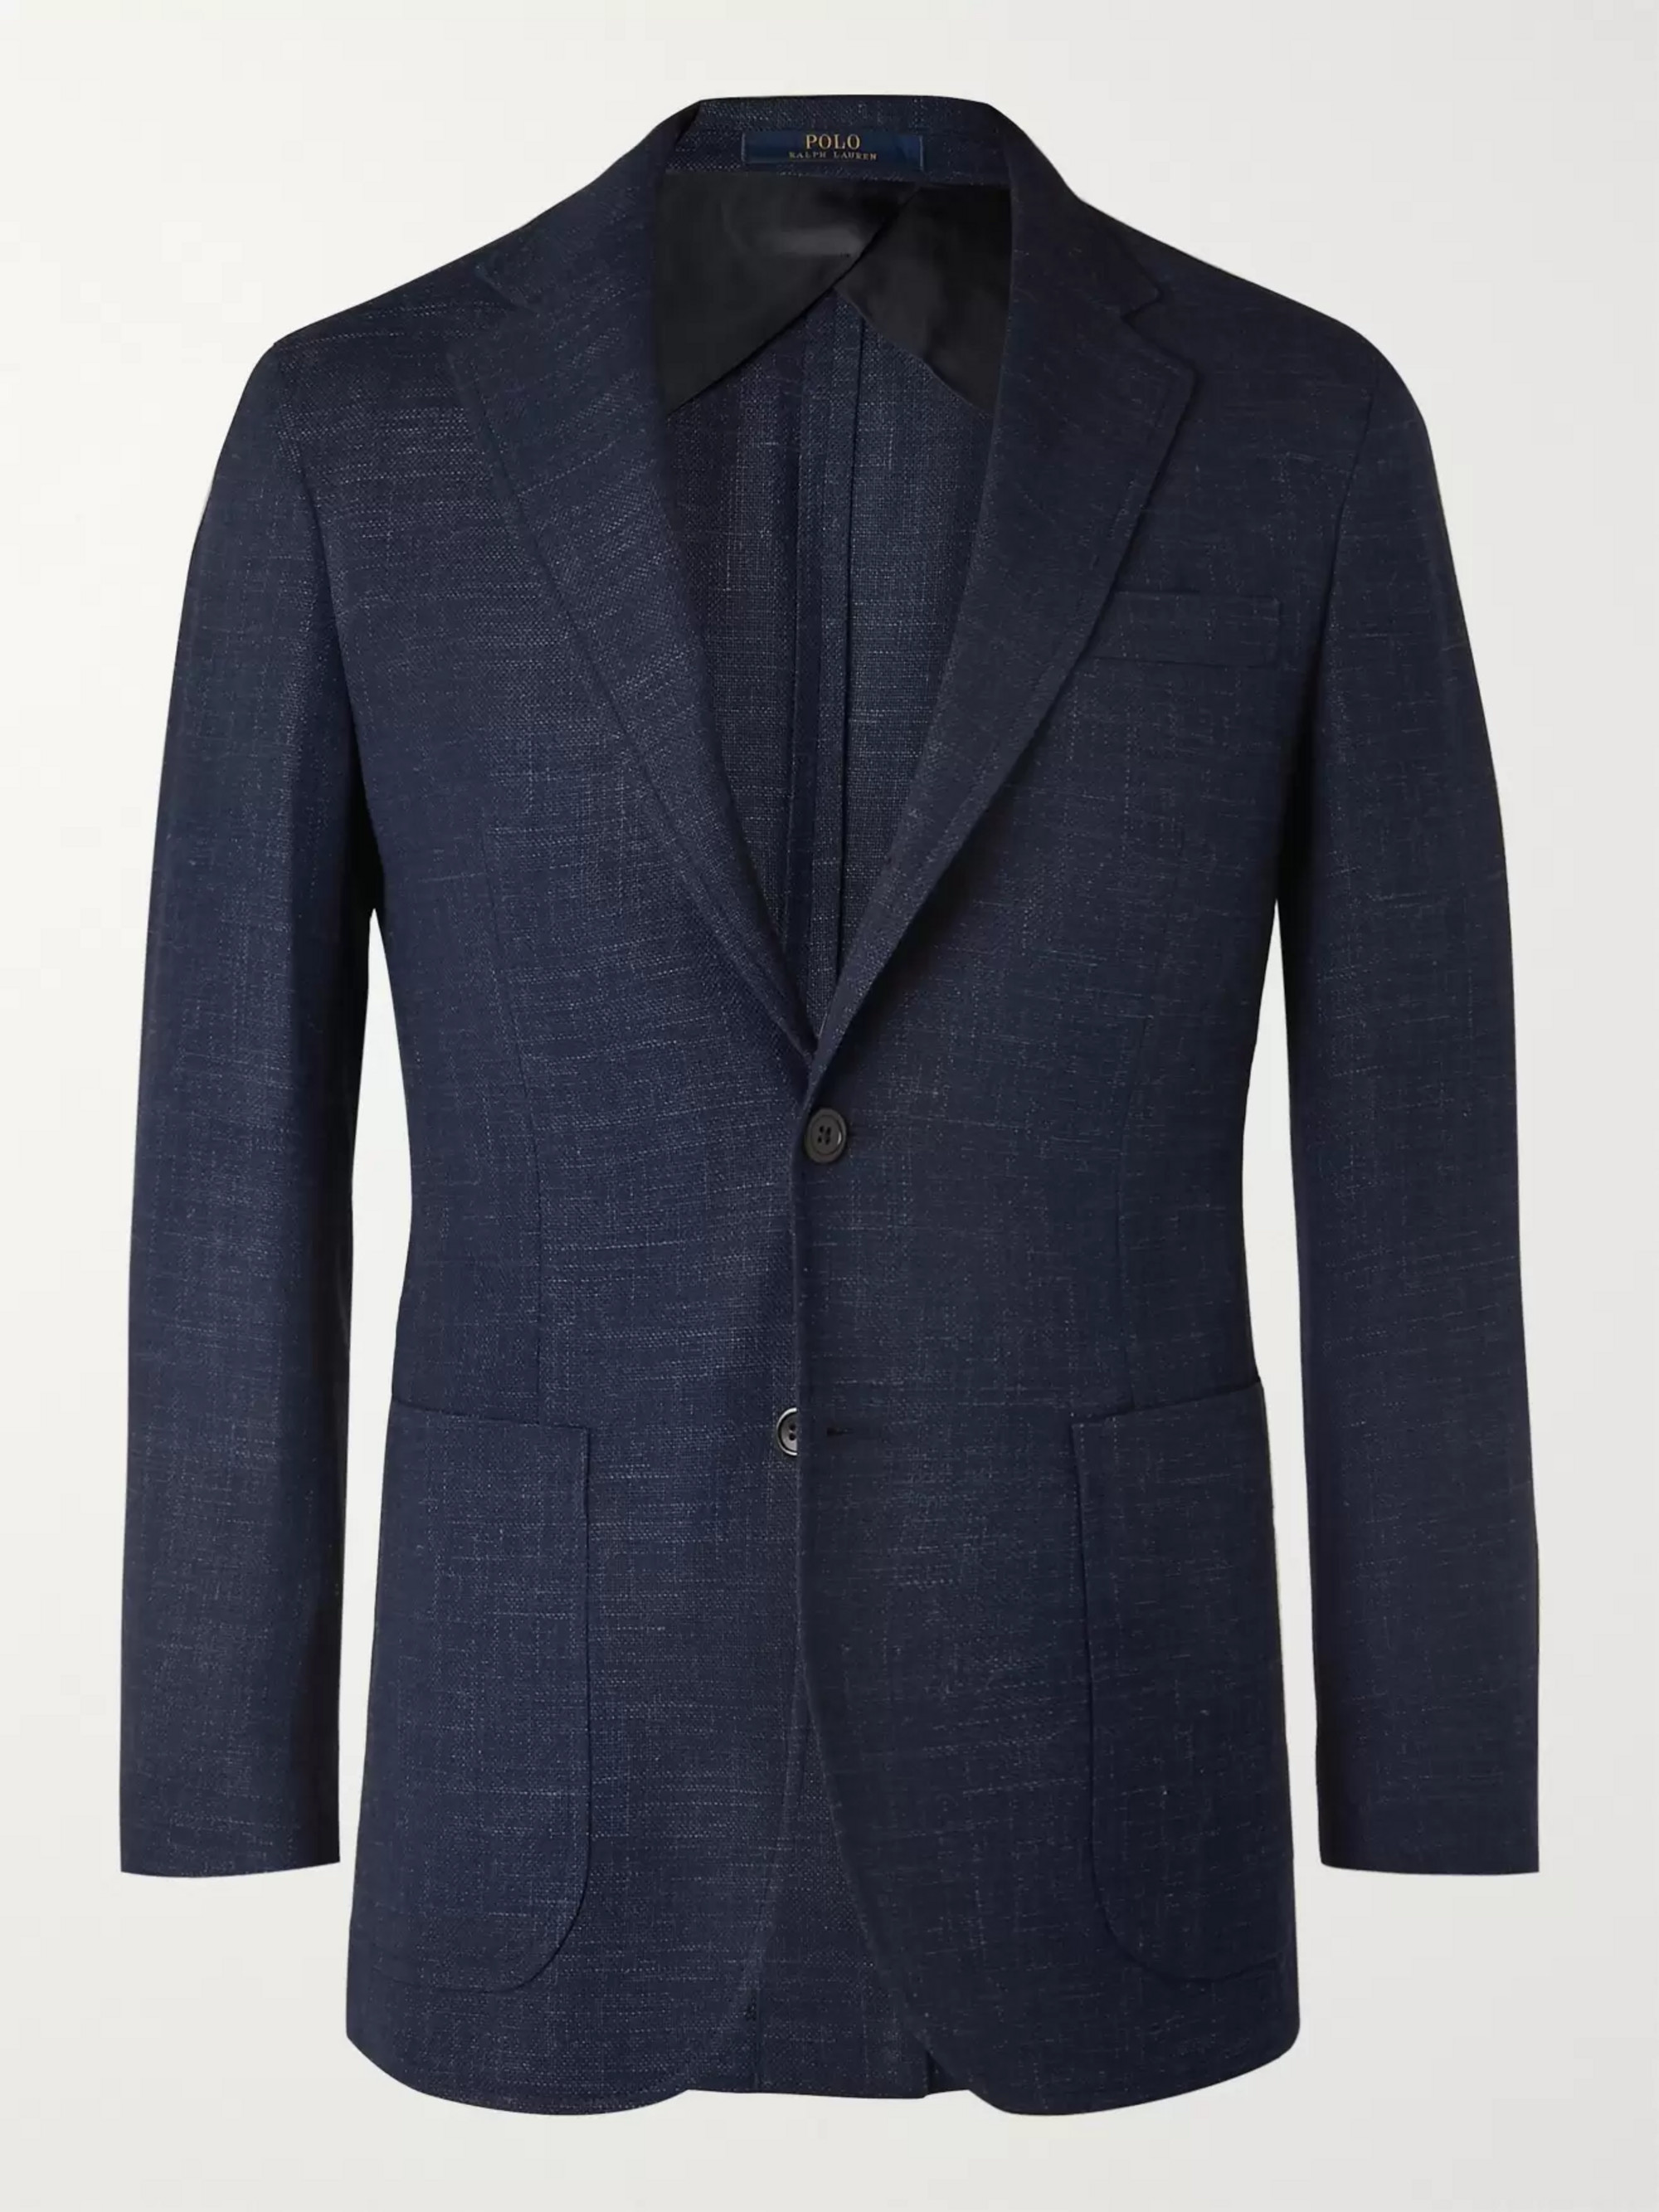 Polo Ralph Lauren Blue Slim-Fit Unstructured Wool-Blend Blazer